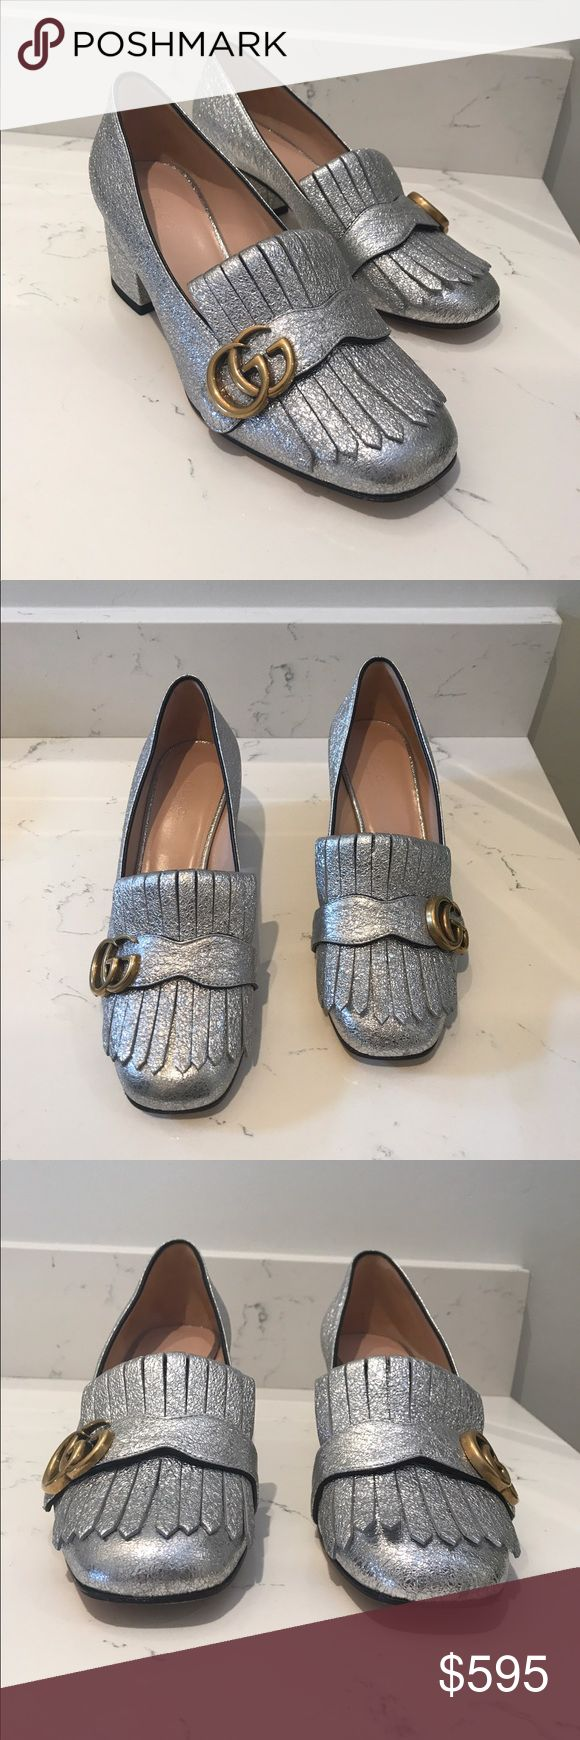 Gucci Loafer Pump Authentic Gucci Peyton Silver Glitter Slip On Loafer Pump with Gold GG Hardware. Like New!  Worn once. Includes Original Box & Dust Bags. No Trades.  Firm on Price. Gucci Shoes